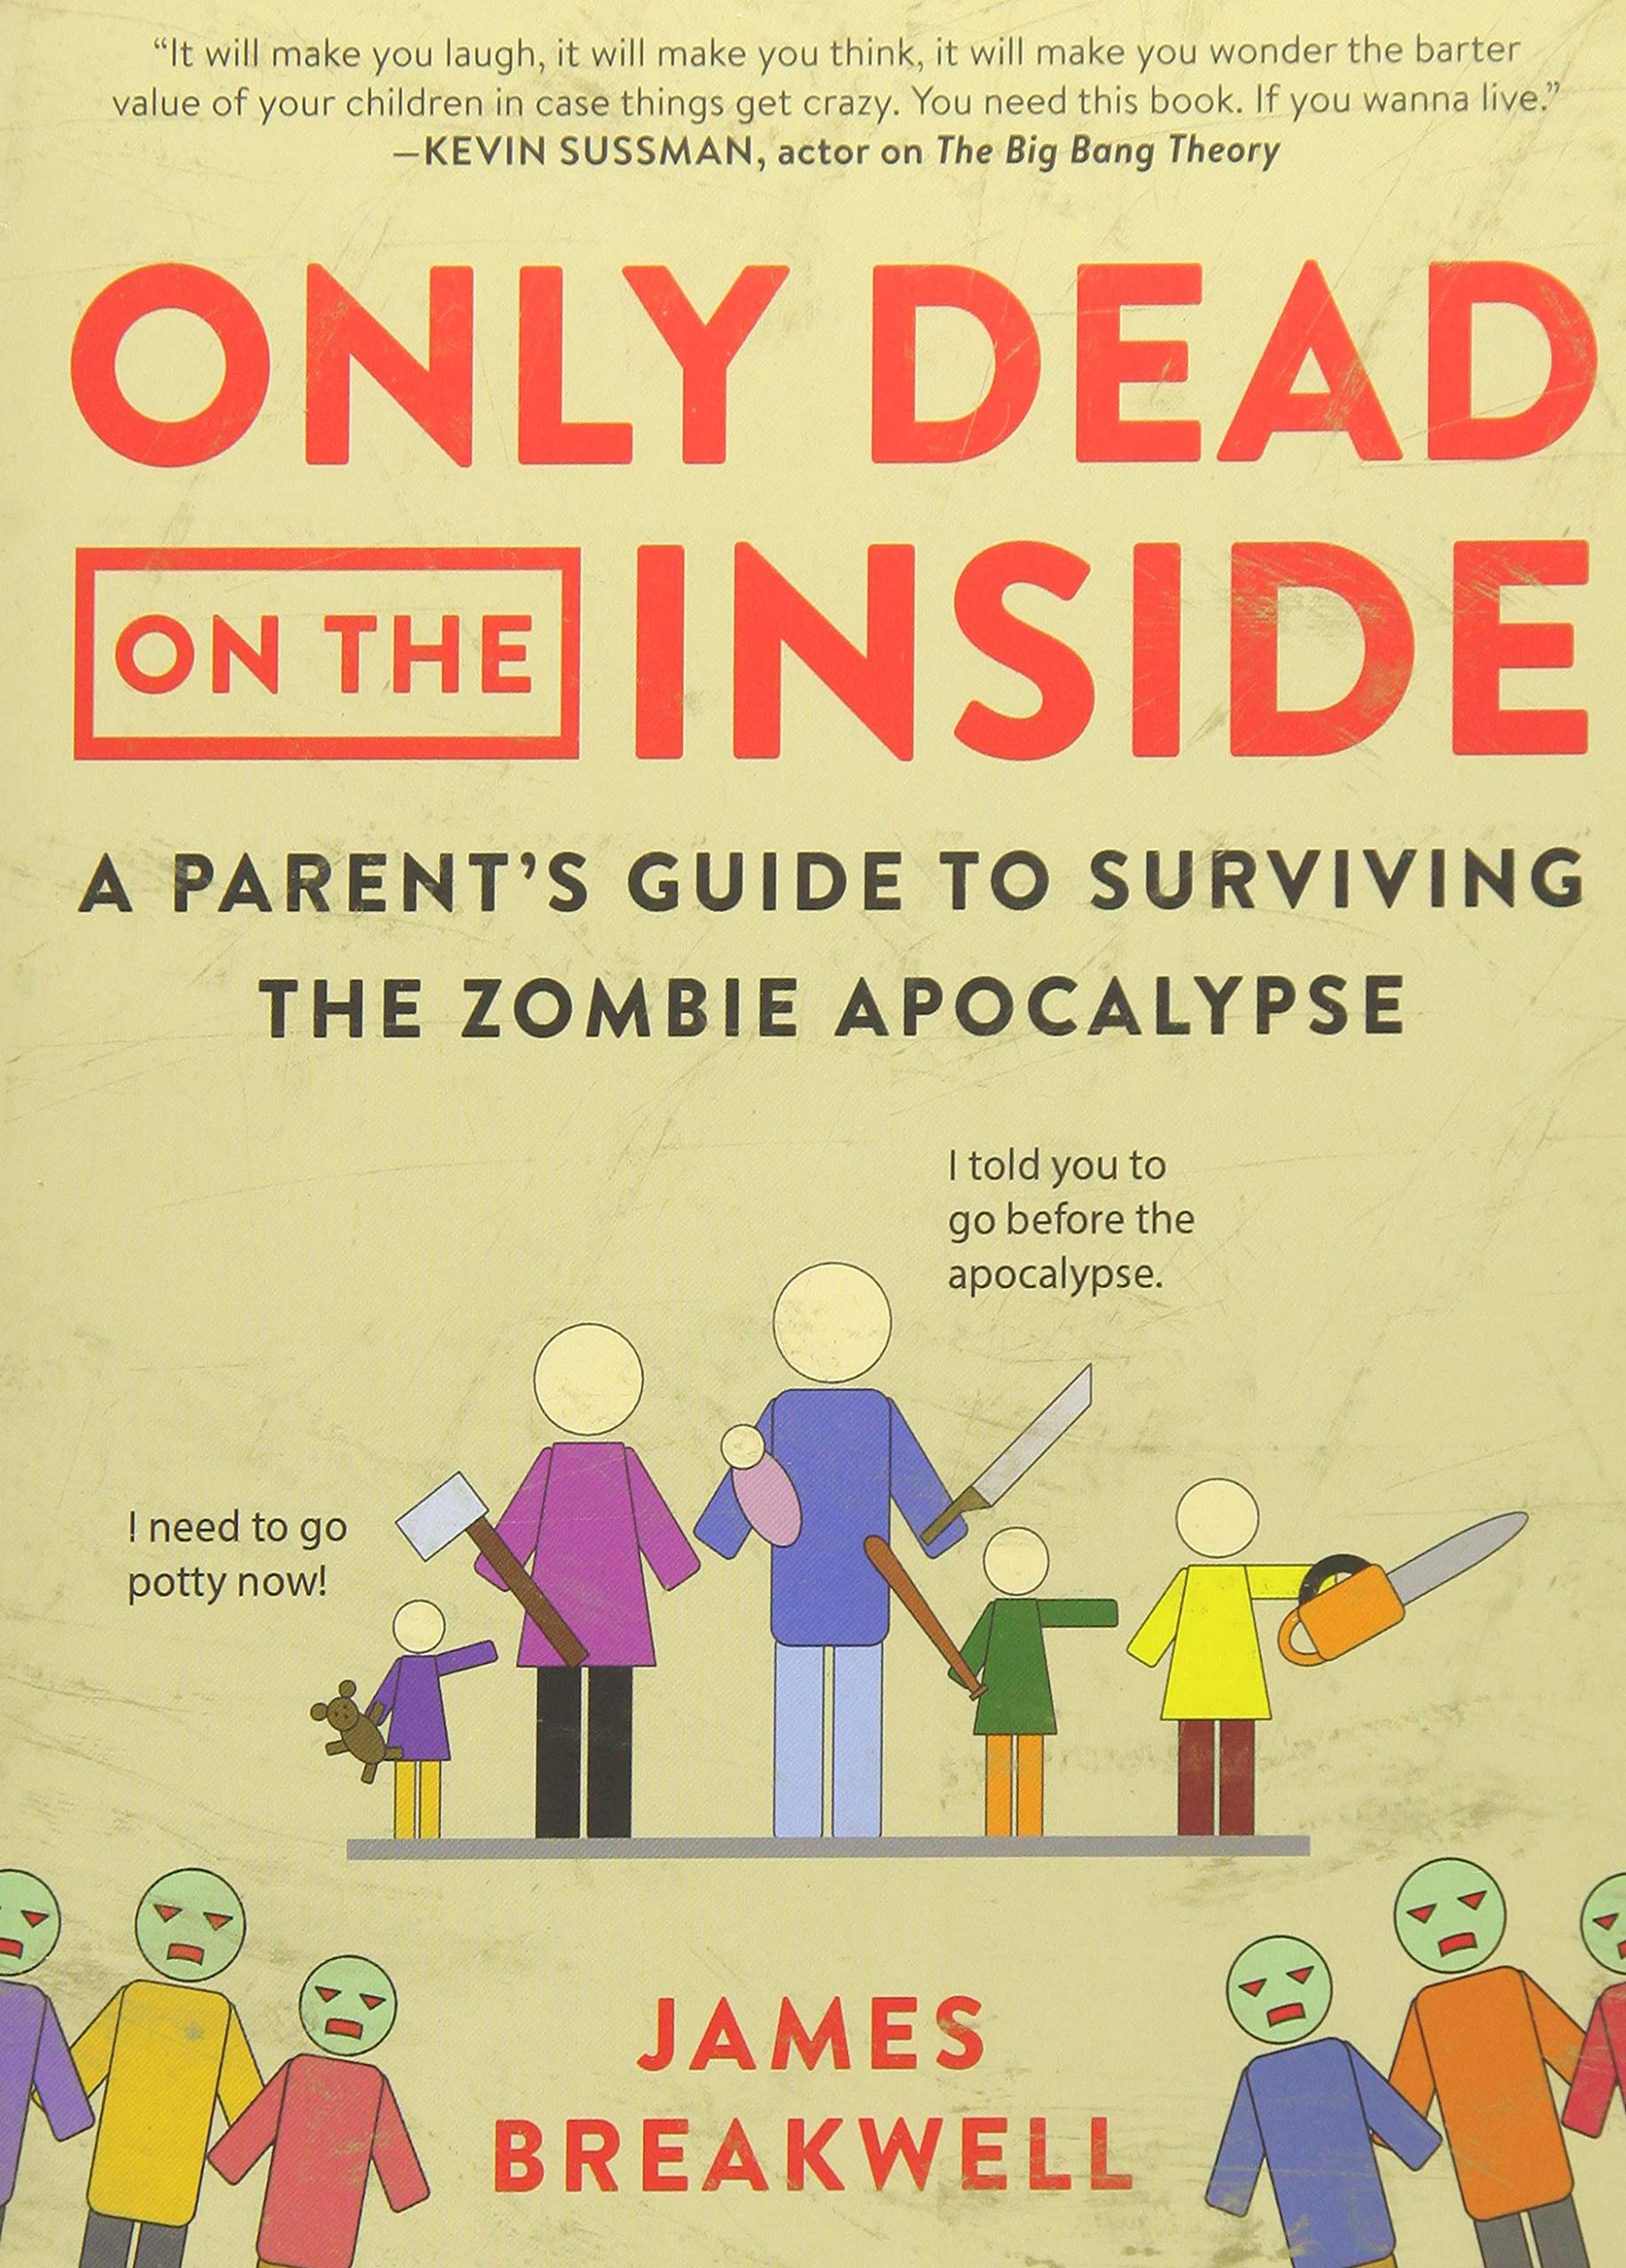 Amazon.com: Only Dead on the Inside: A Parent's Guide to Surviving the  Zombie Apocalypse (9781944648633): James Breakwell: Books